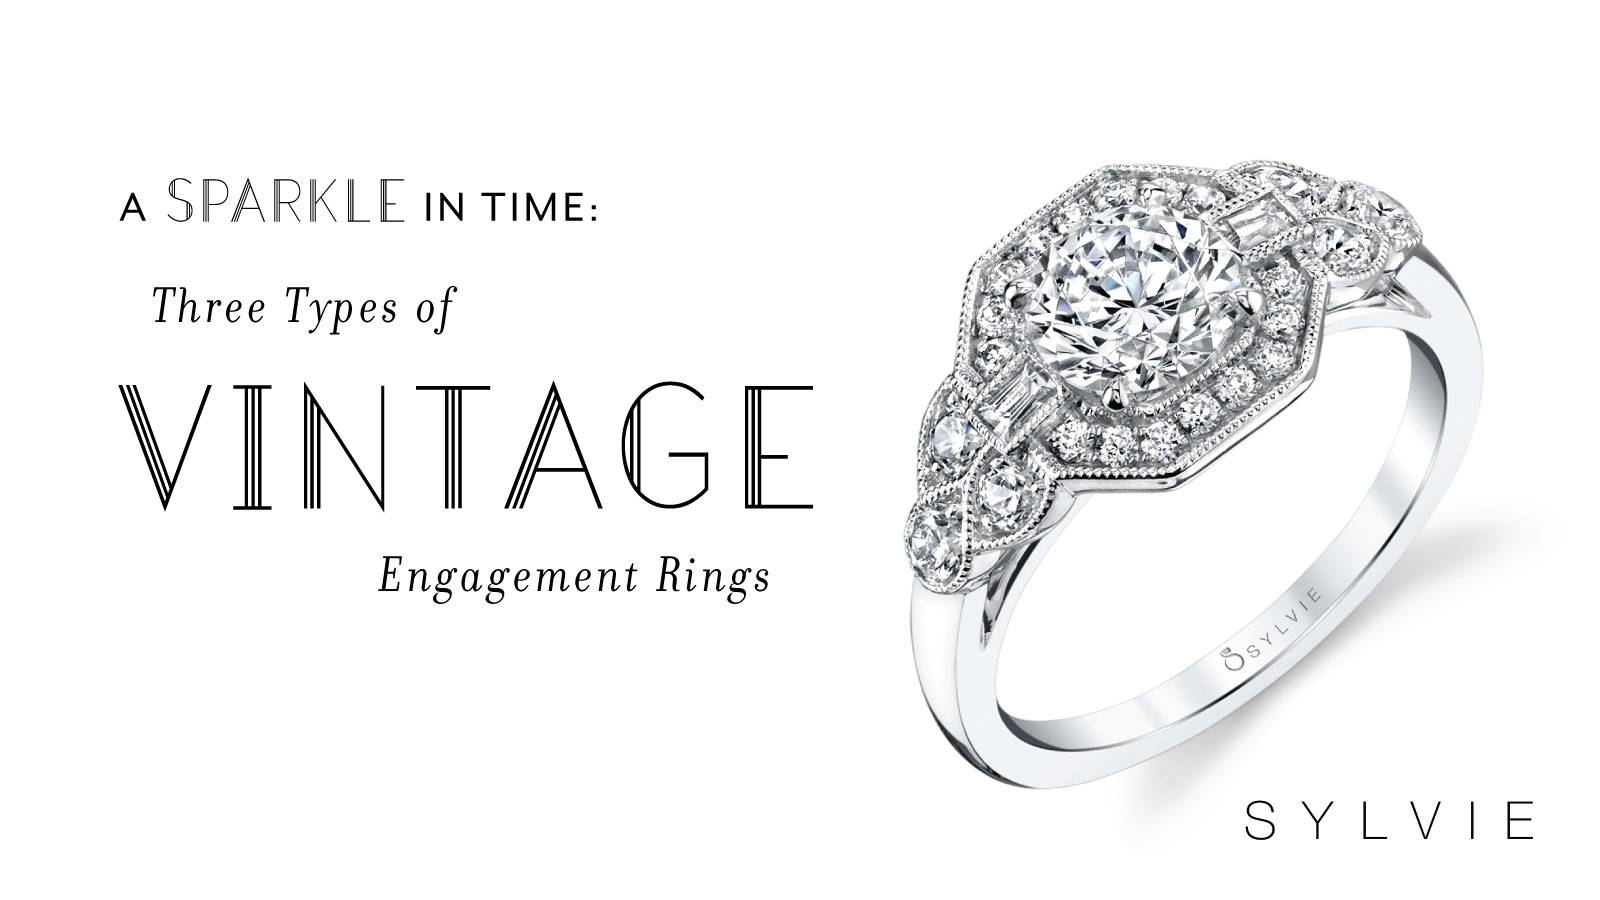 3 Types of Vintage Rings You Should Know About